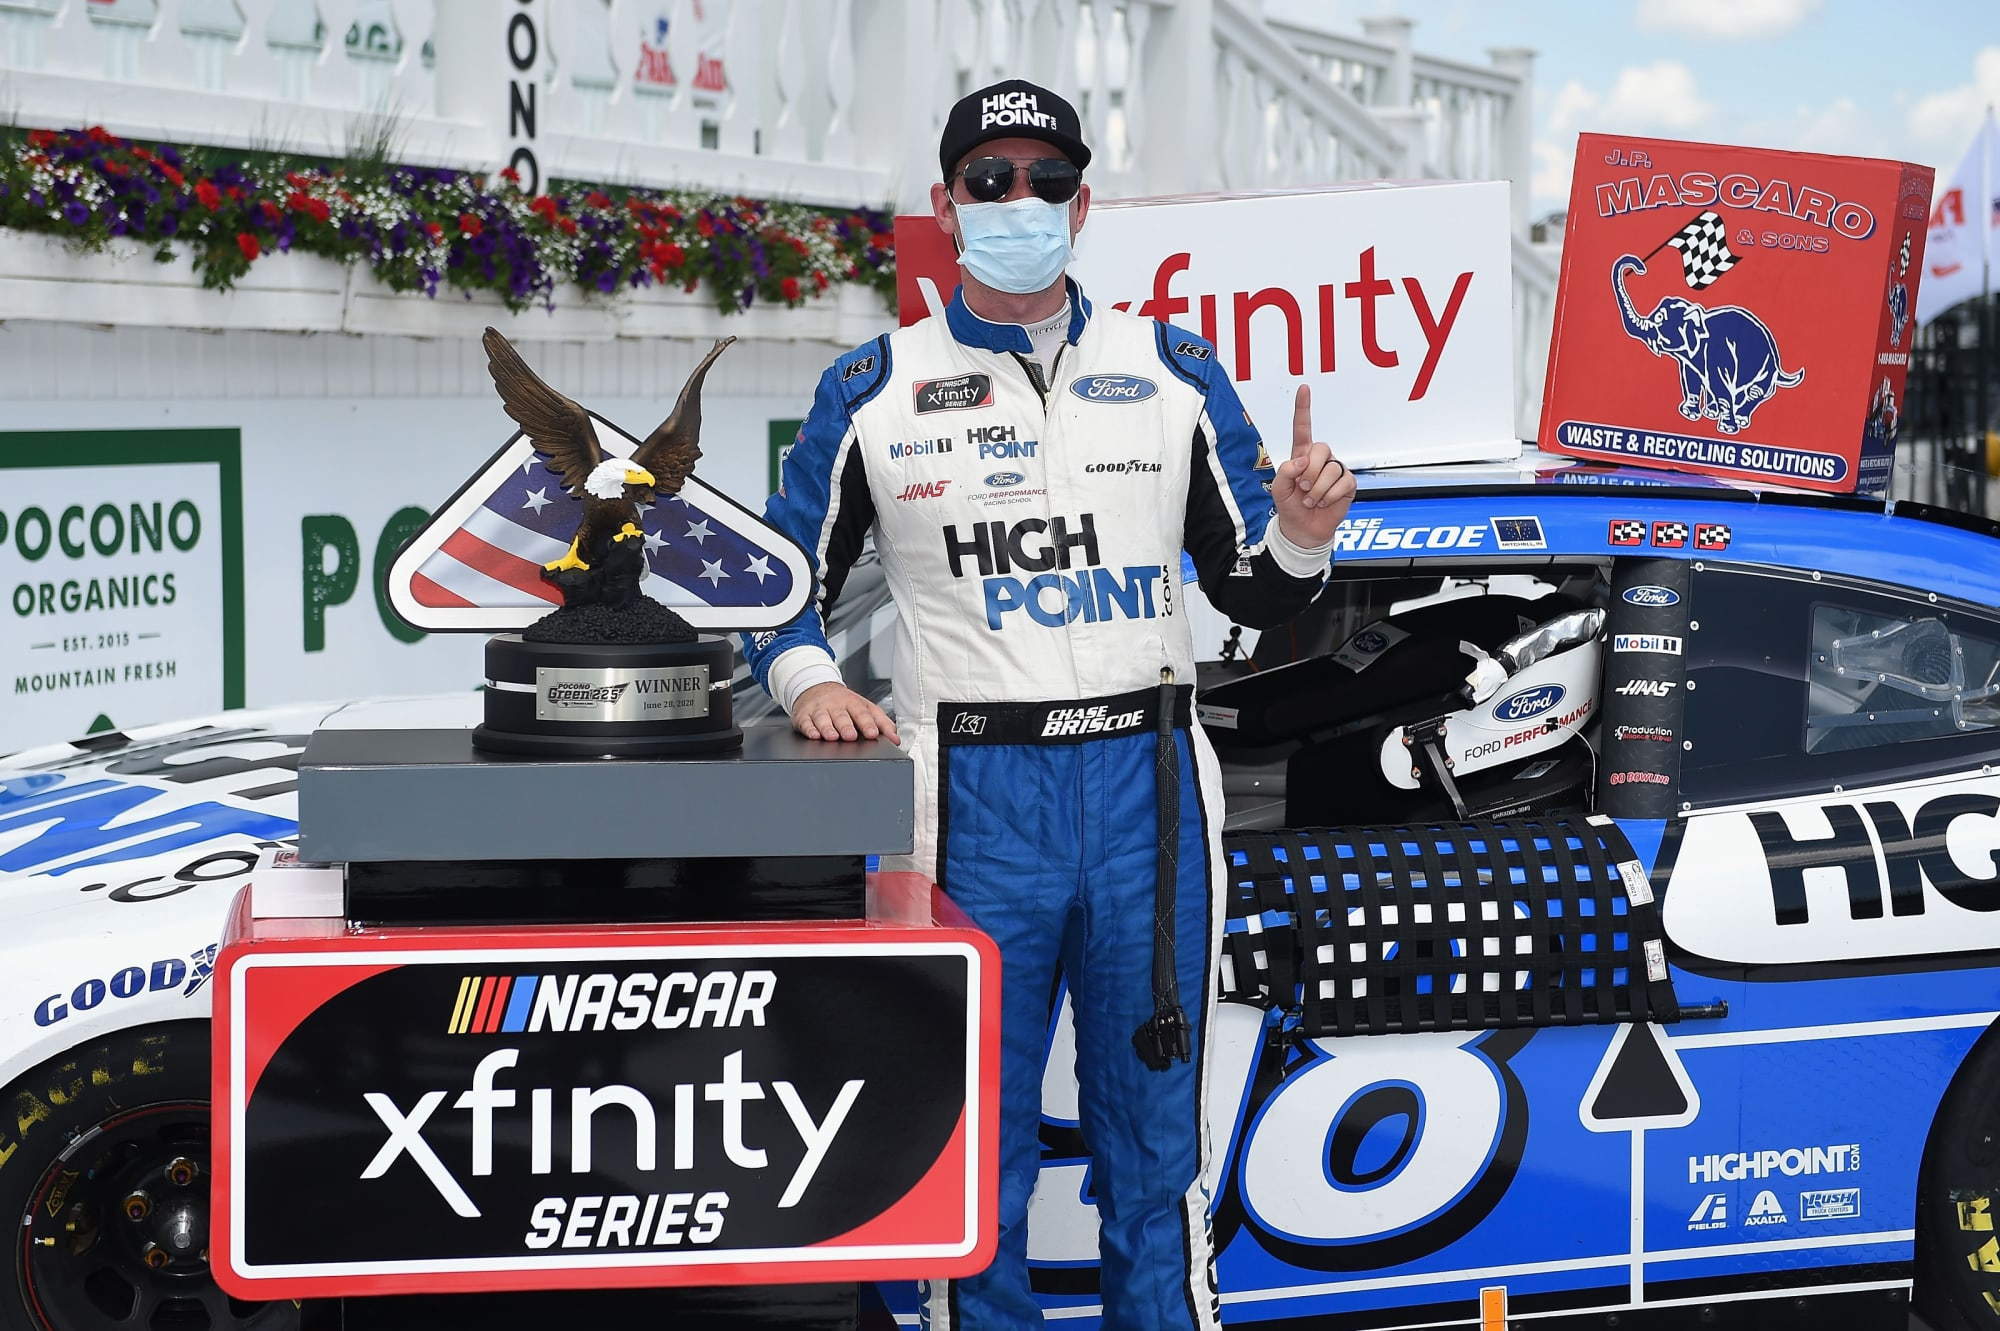 NASCAR: Resilience has defined Chase Briscoe's 2020 season